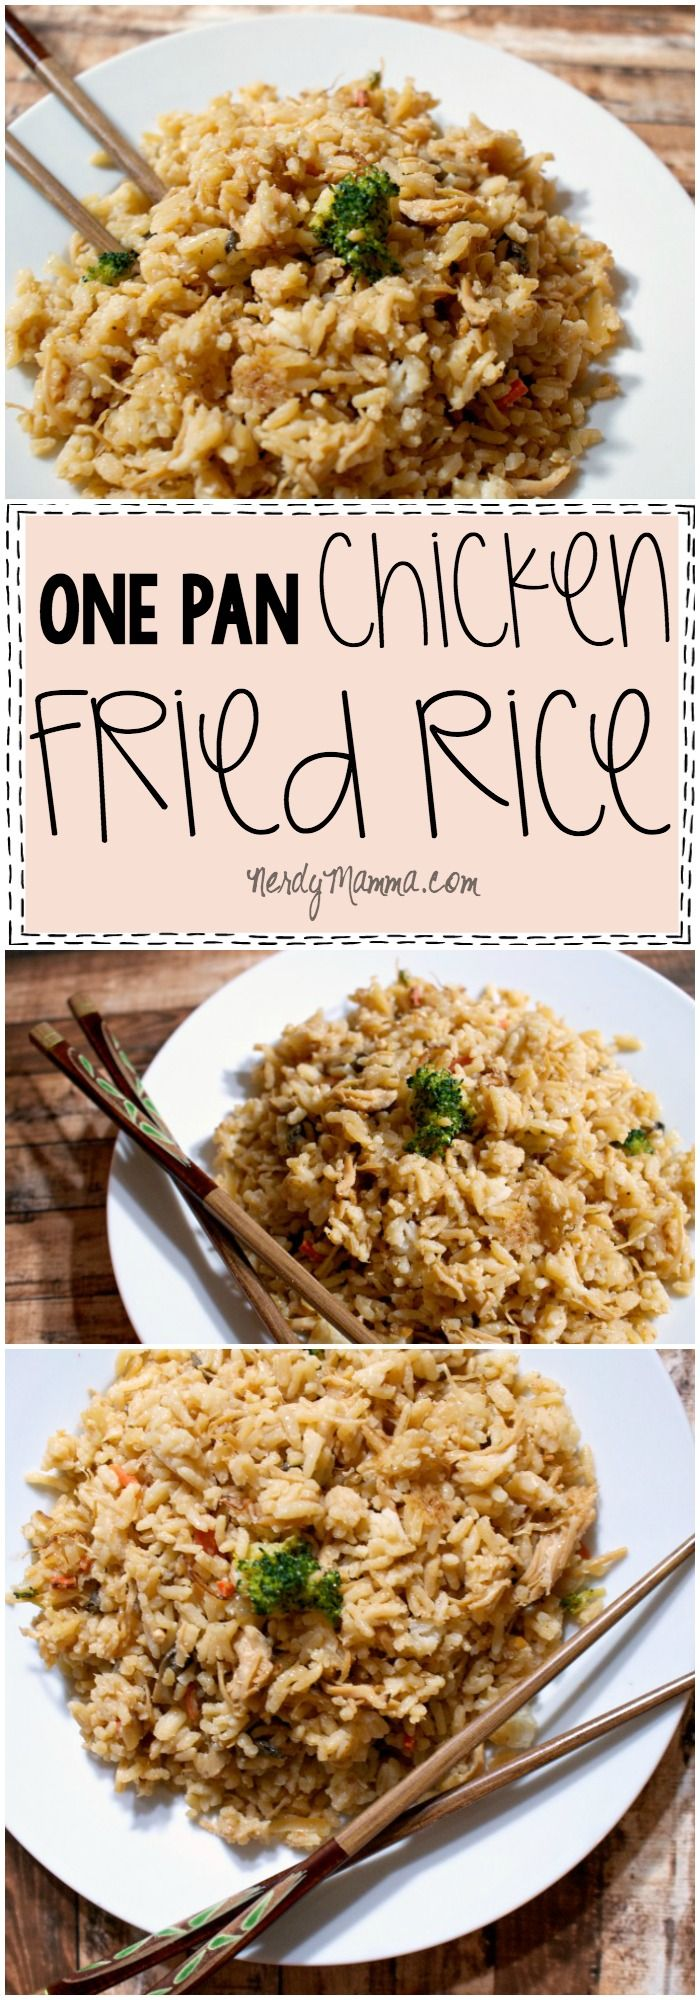 I absolutely LOVE this recipe for One Pan Chicken Fried Rice. So fast and my family thinks it's just like take-out! LOL!